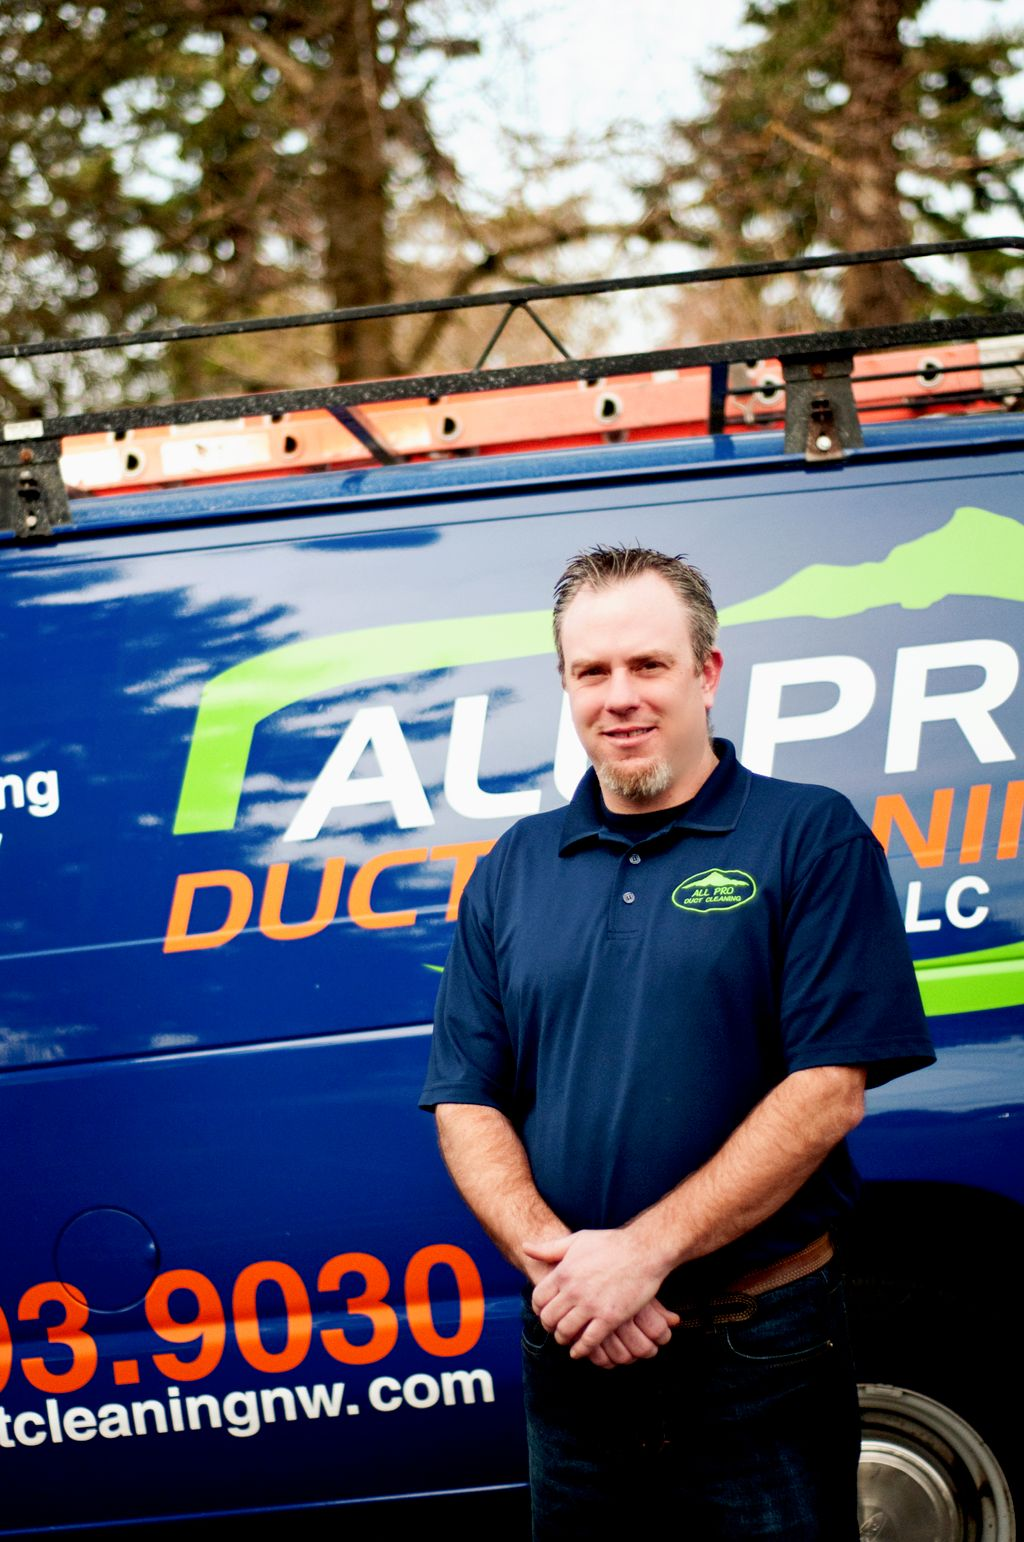 All Pro Duct Cleaning LLC